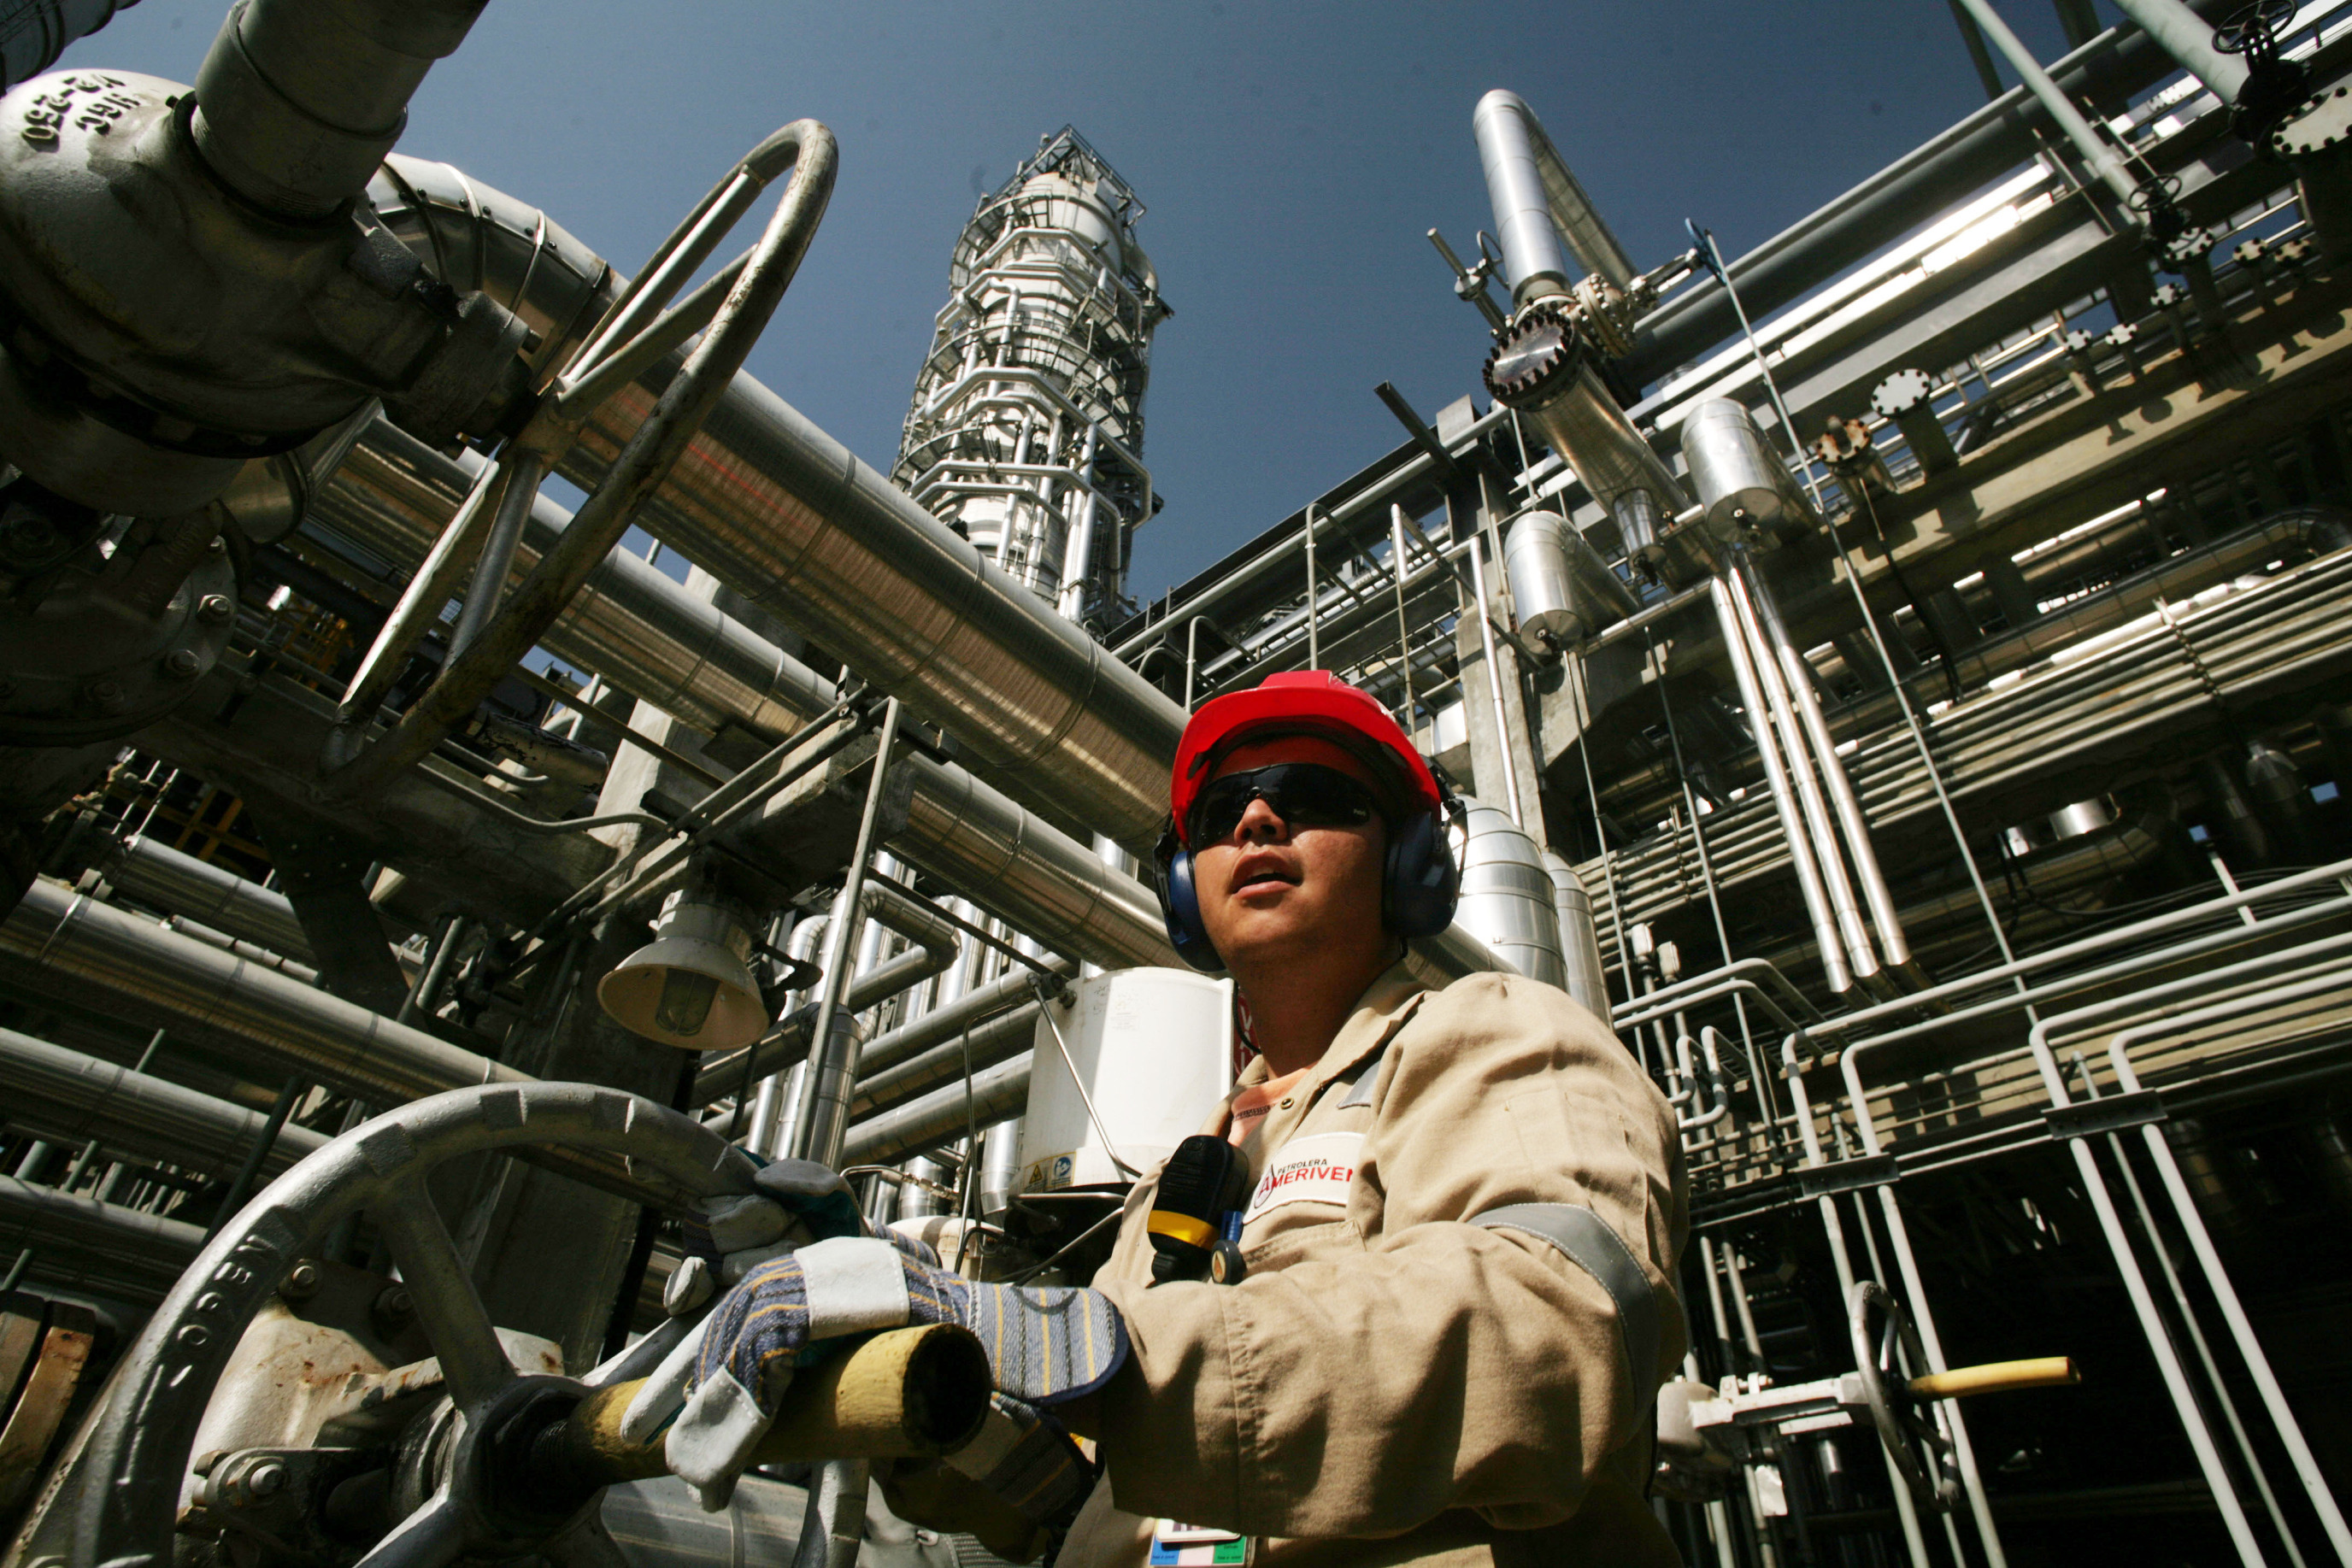 A worker opens a valve at the Ameriven oil refinery, one of the four companies at the Jose Complex in Anzoategui state, 200 miles East from Caracas, Venezuela, on Thursday, Sept. 13, 2007.  Photographer: DIEGO GIUDICE/Bloomberg